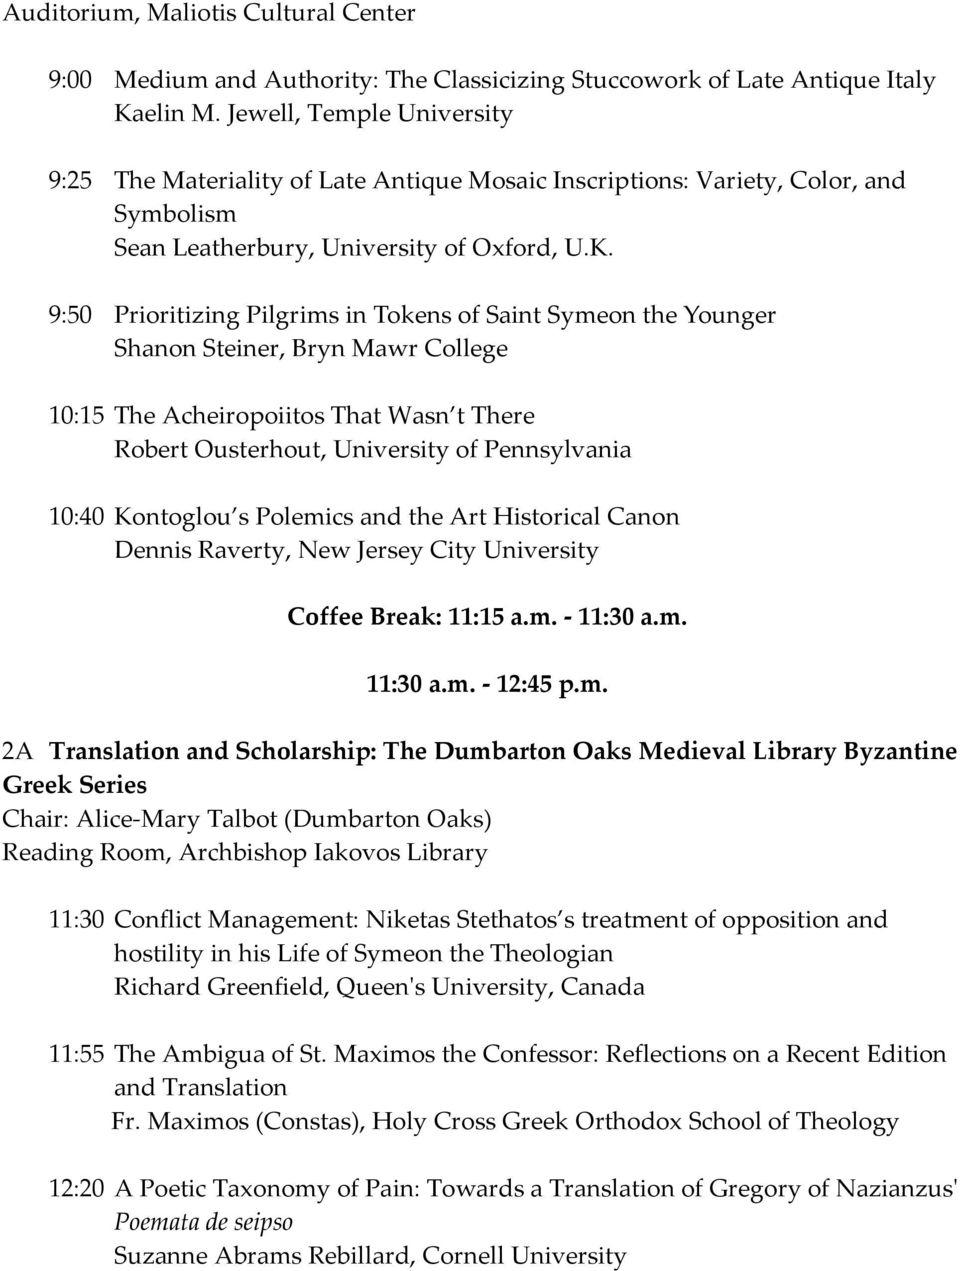 9:50 Prioritizing Pilgrims in Tokens of Saint Symeon the Younger Shanon Steiner, Bryn Mawr College 10:15 The Acheiropoiitos That Wasn t There Robert Ousterhout, University of Pennsylvania 10:40